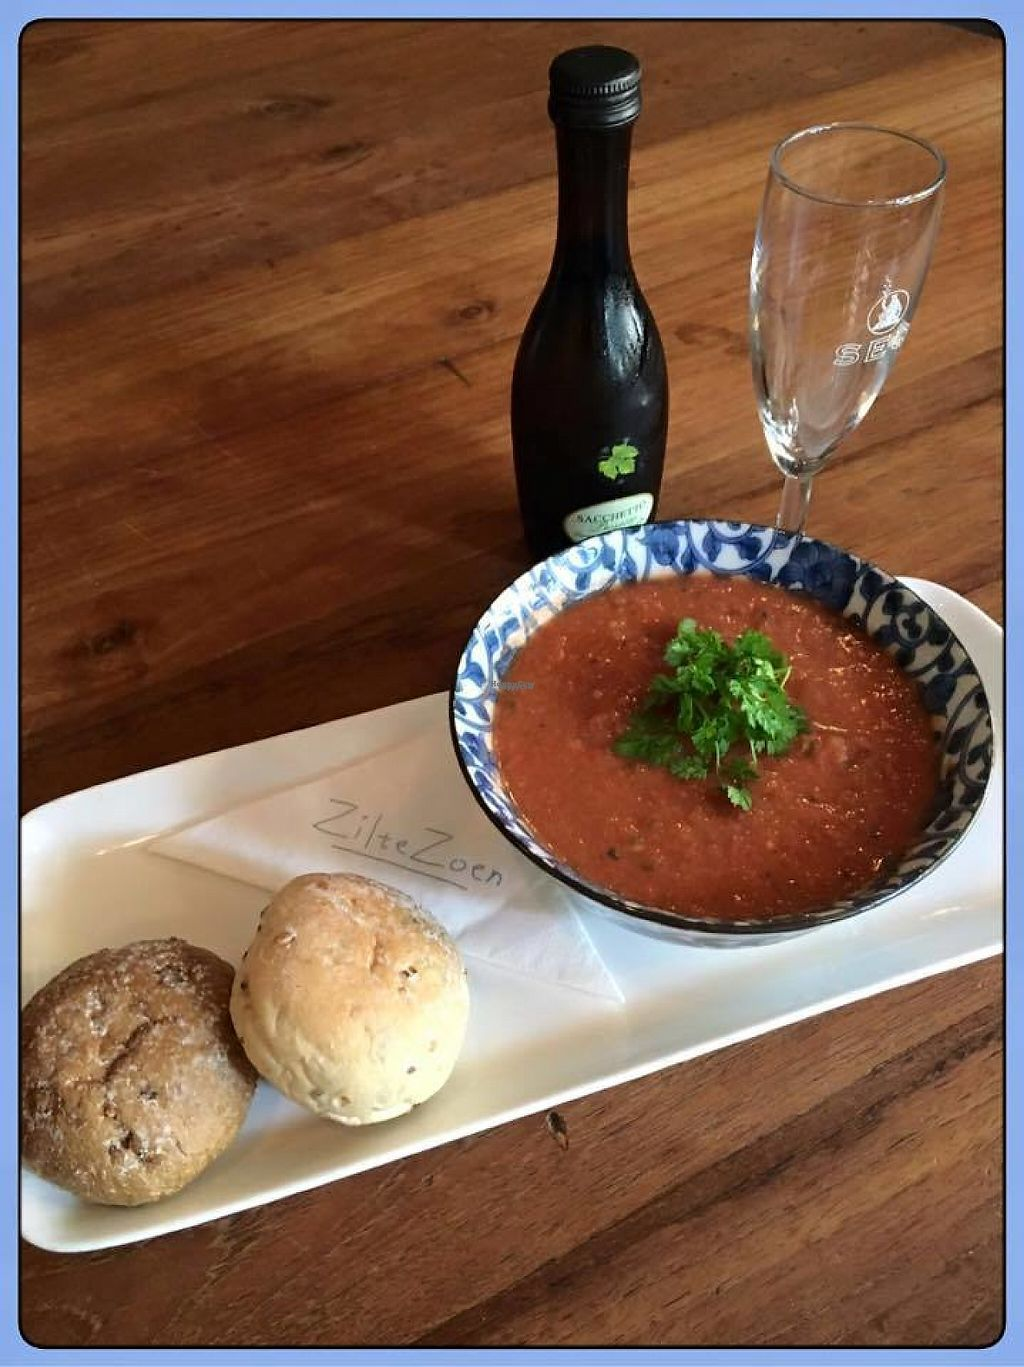 """Photo of Zilte Zoen  by <a href=""""/members/profile/community"""">community</a> <br/>Delicious Cooling Gazpacho <br/> February 6, 2017  - <a href='/contact/abuse/image/72755/223566'>Report</a>"""